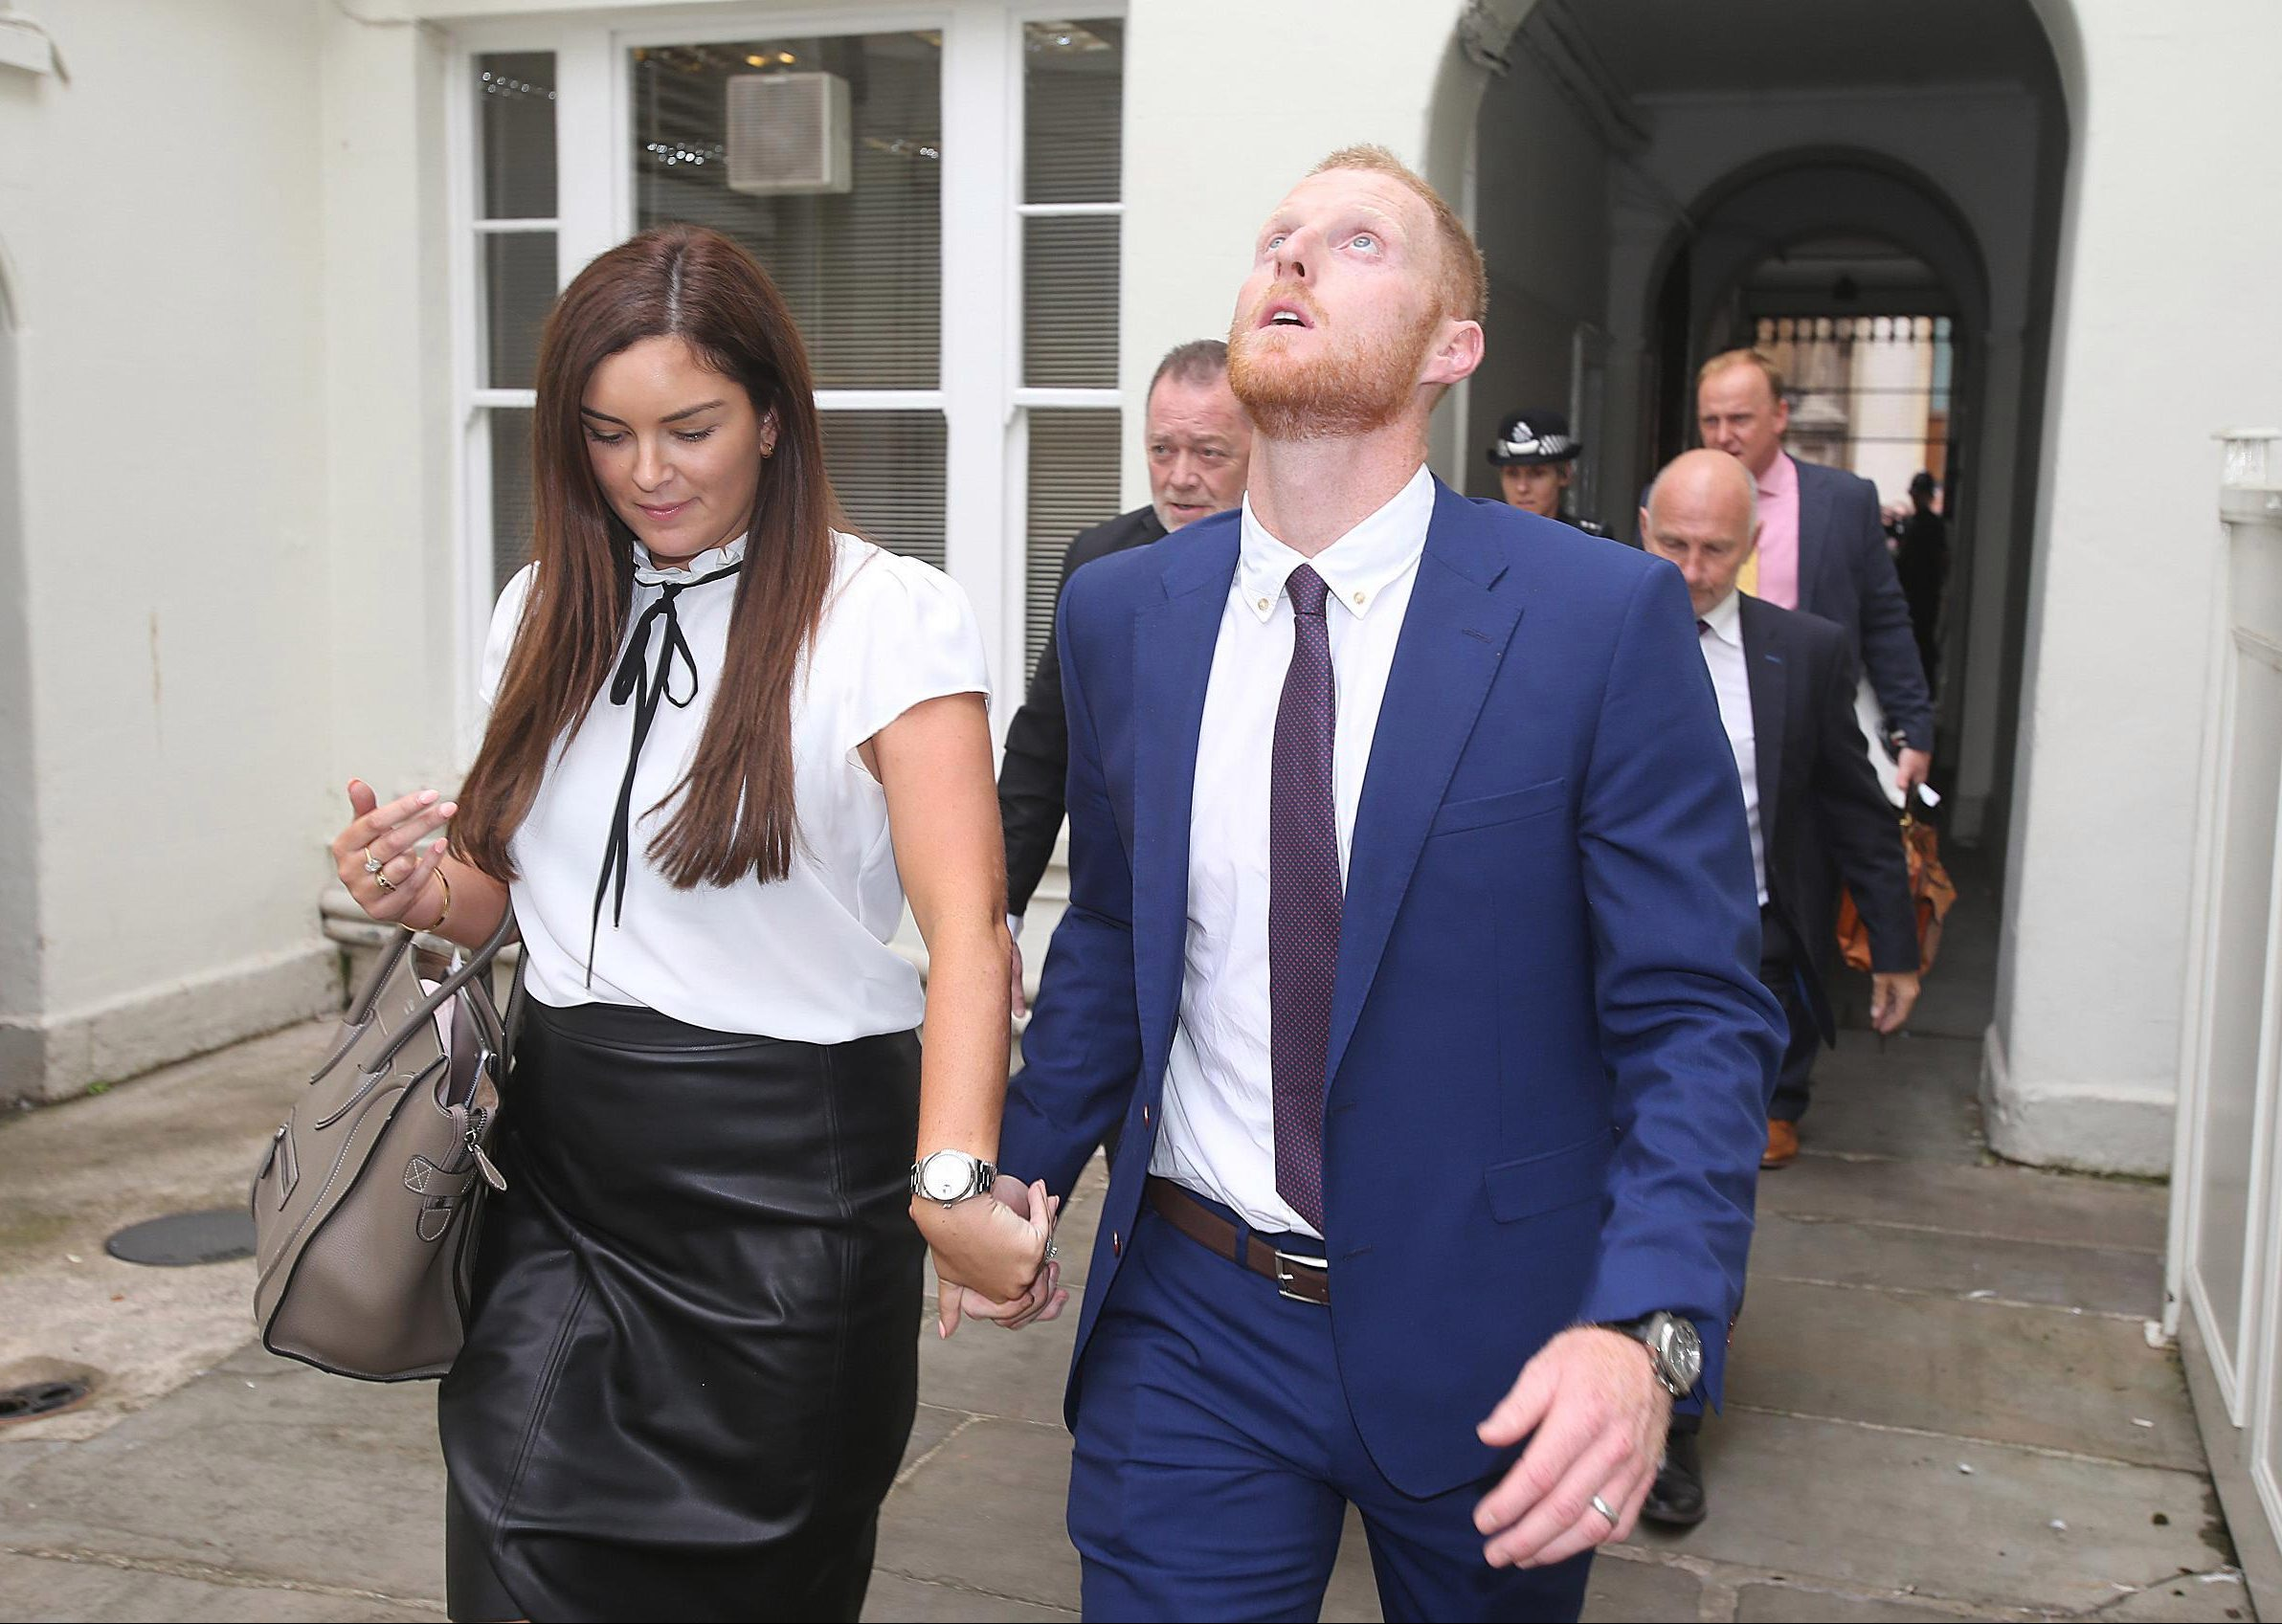 Ben Stokes was cleared by a court of affray